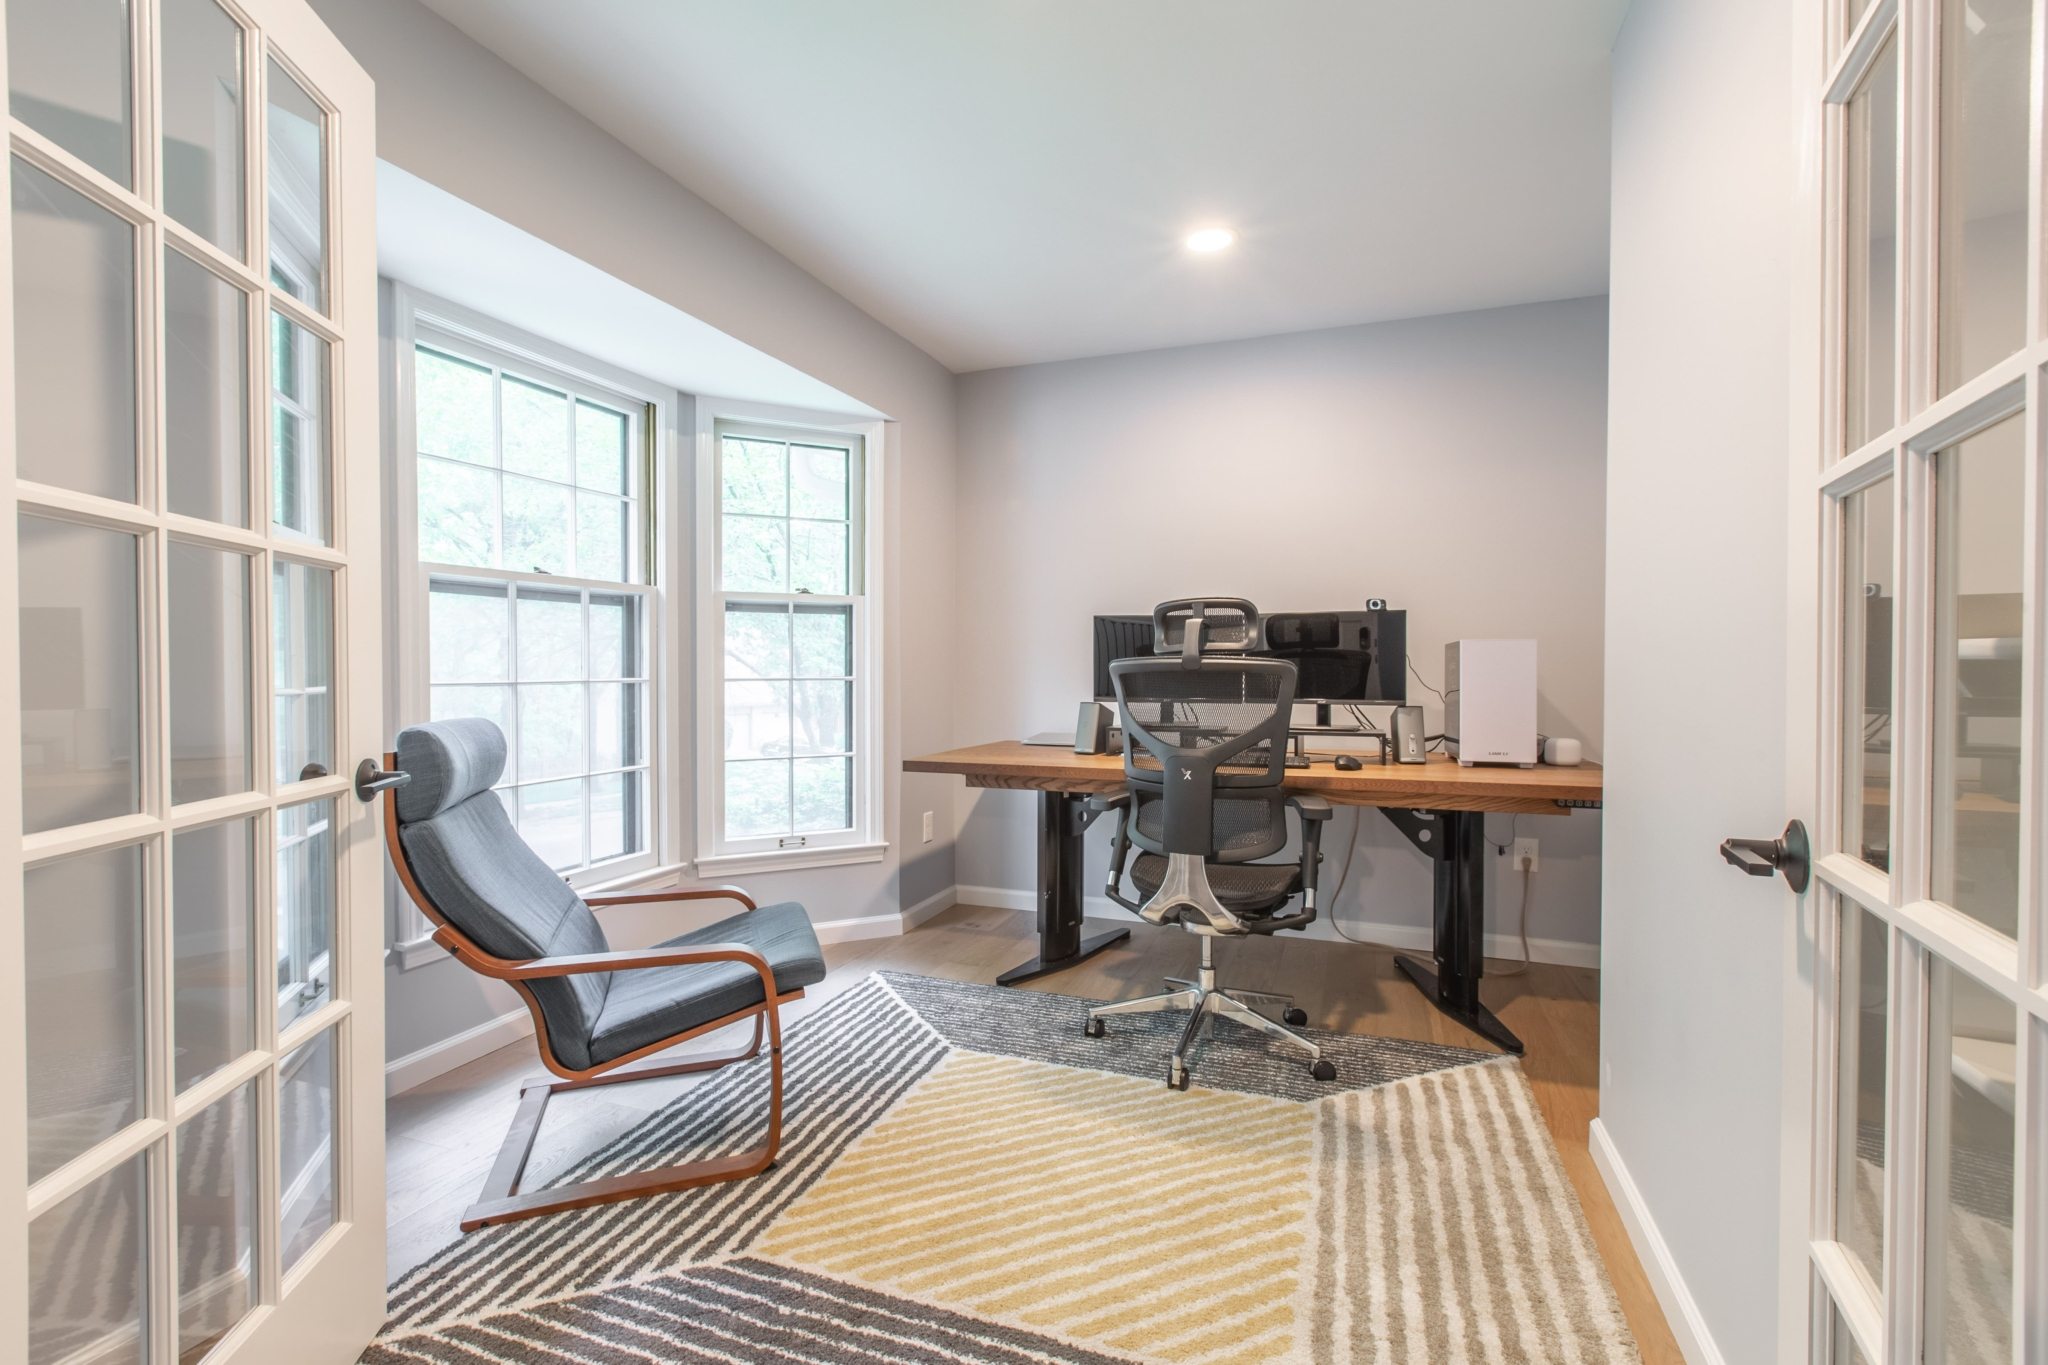 Home Office Remodel 6-21a